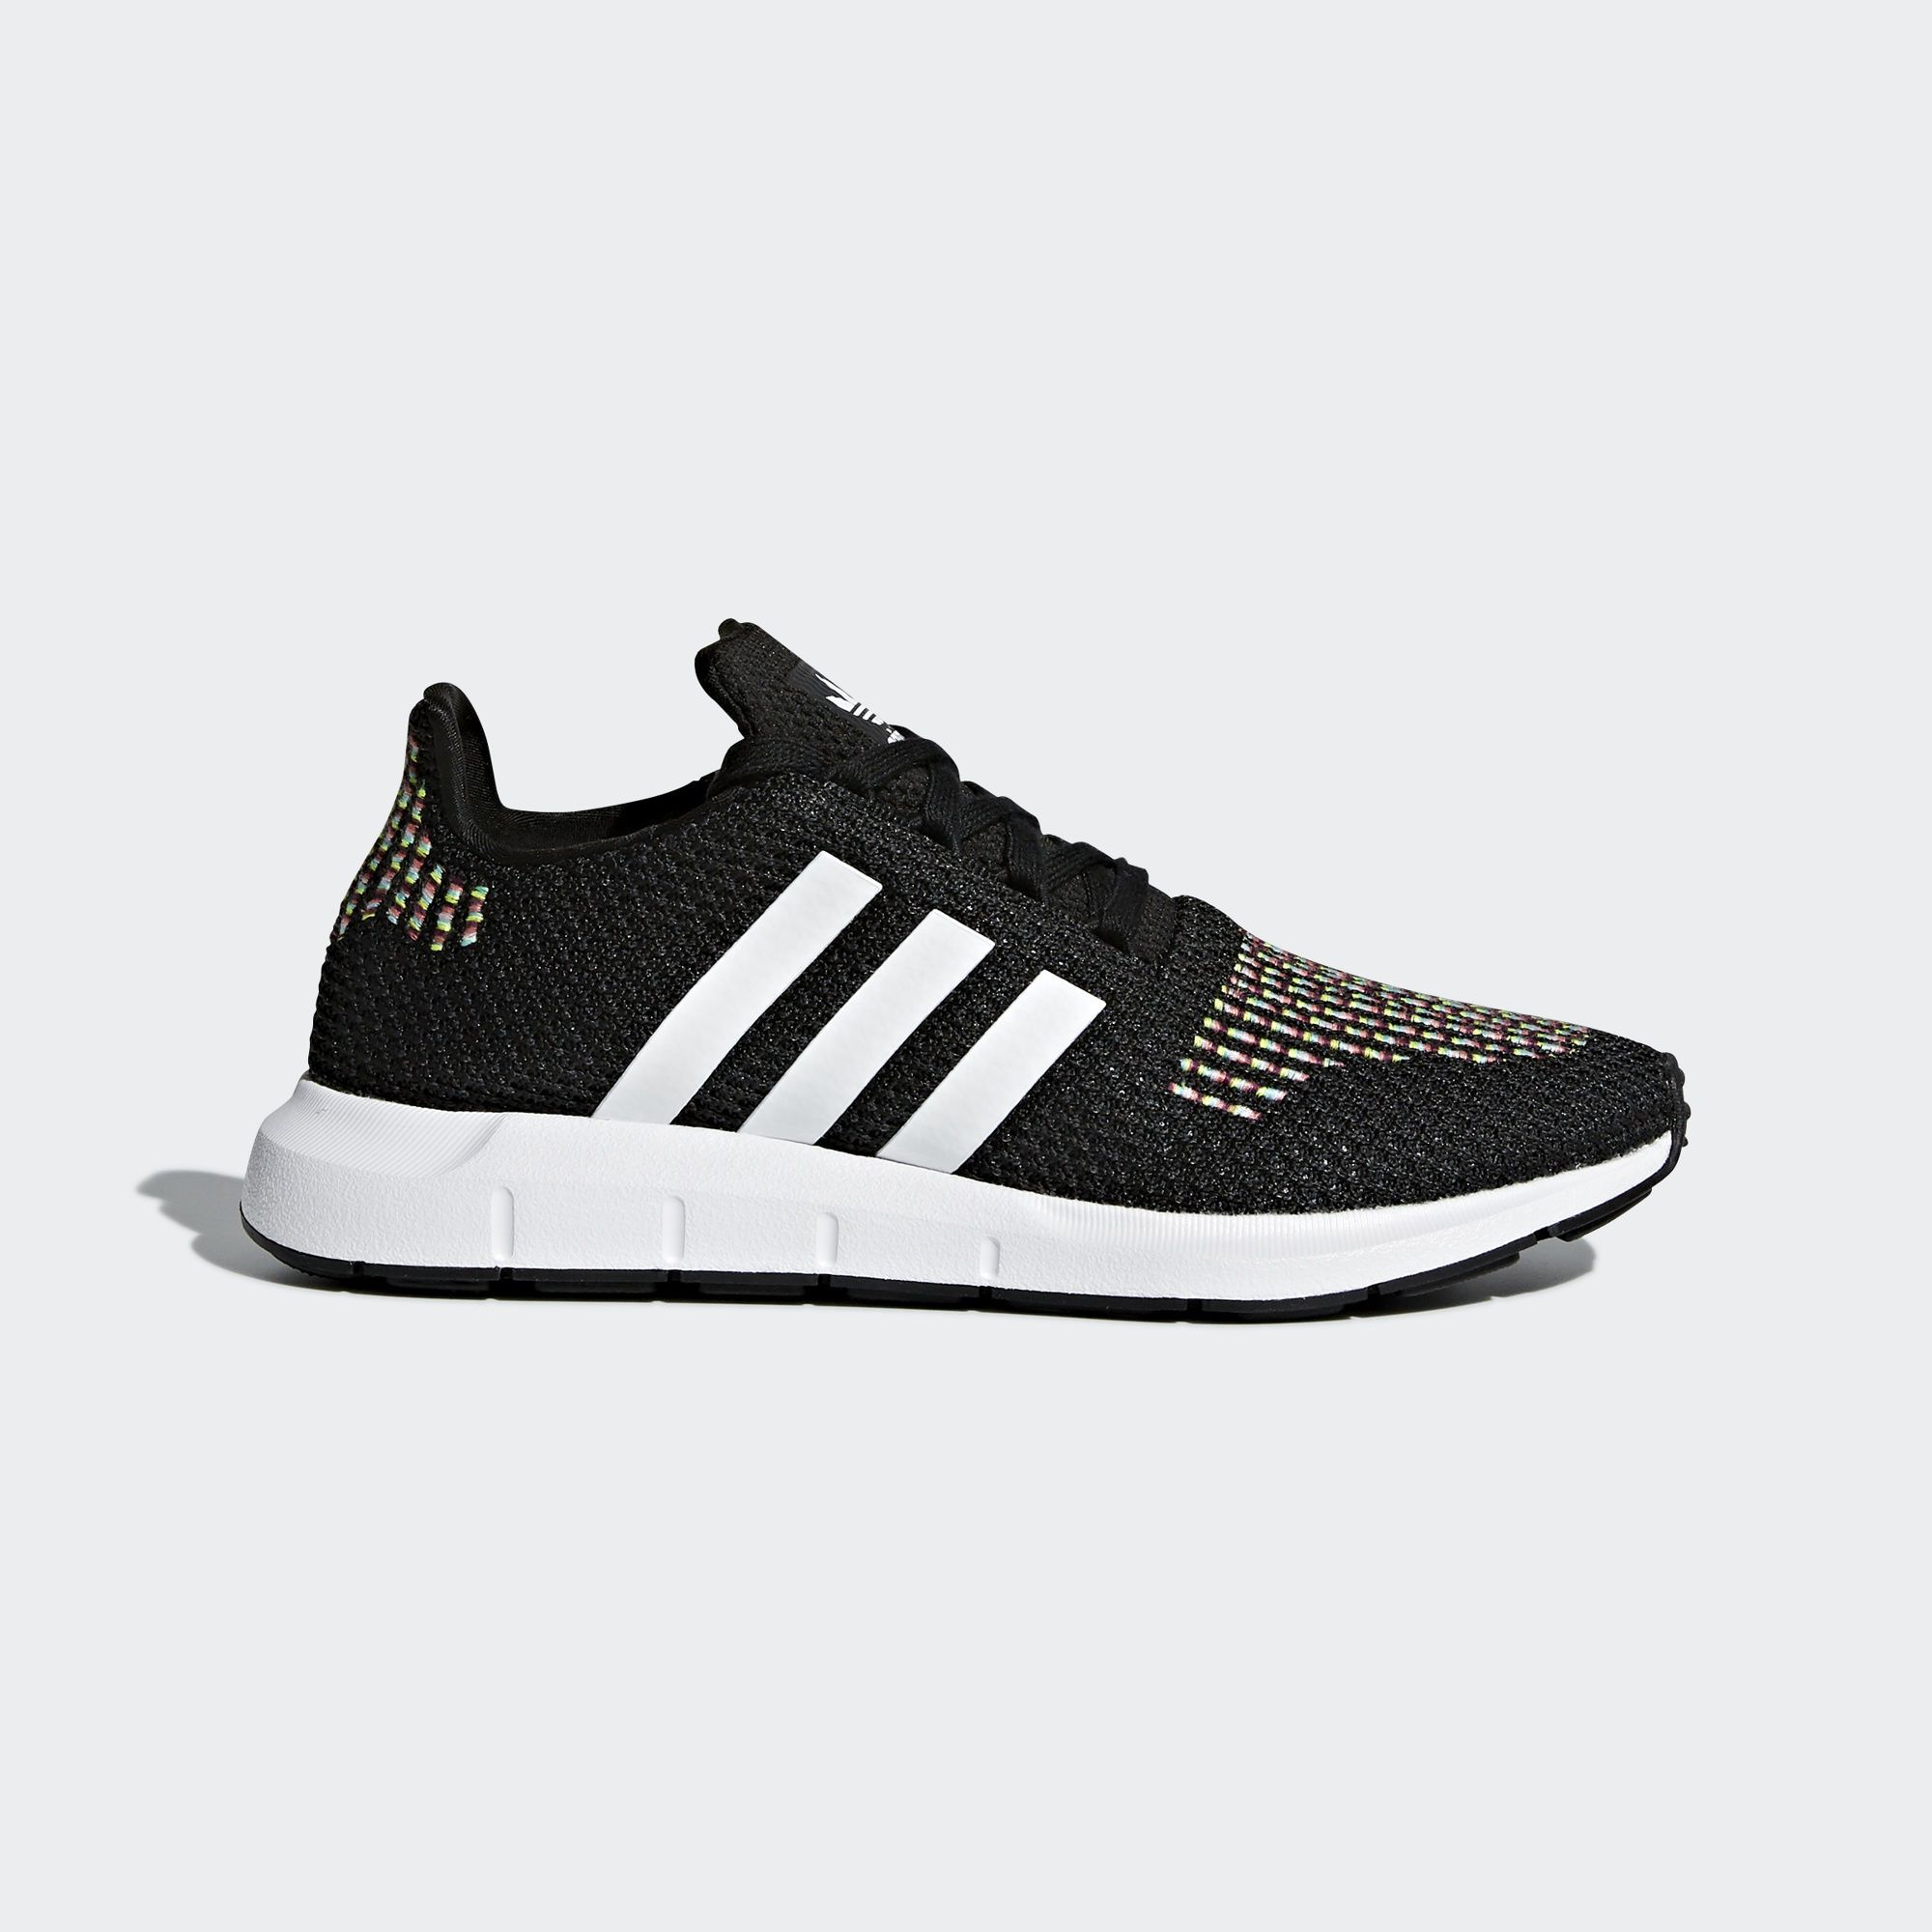 8b3101a356934 Shop for Swift Run Shoes - Black at adidas.co.uk! See all the styles ...